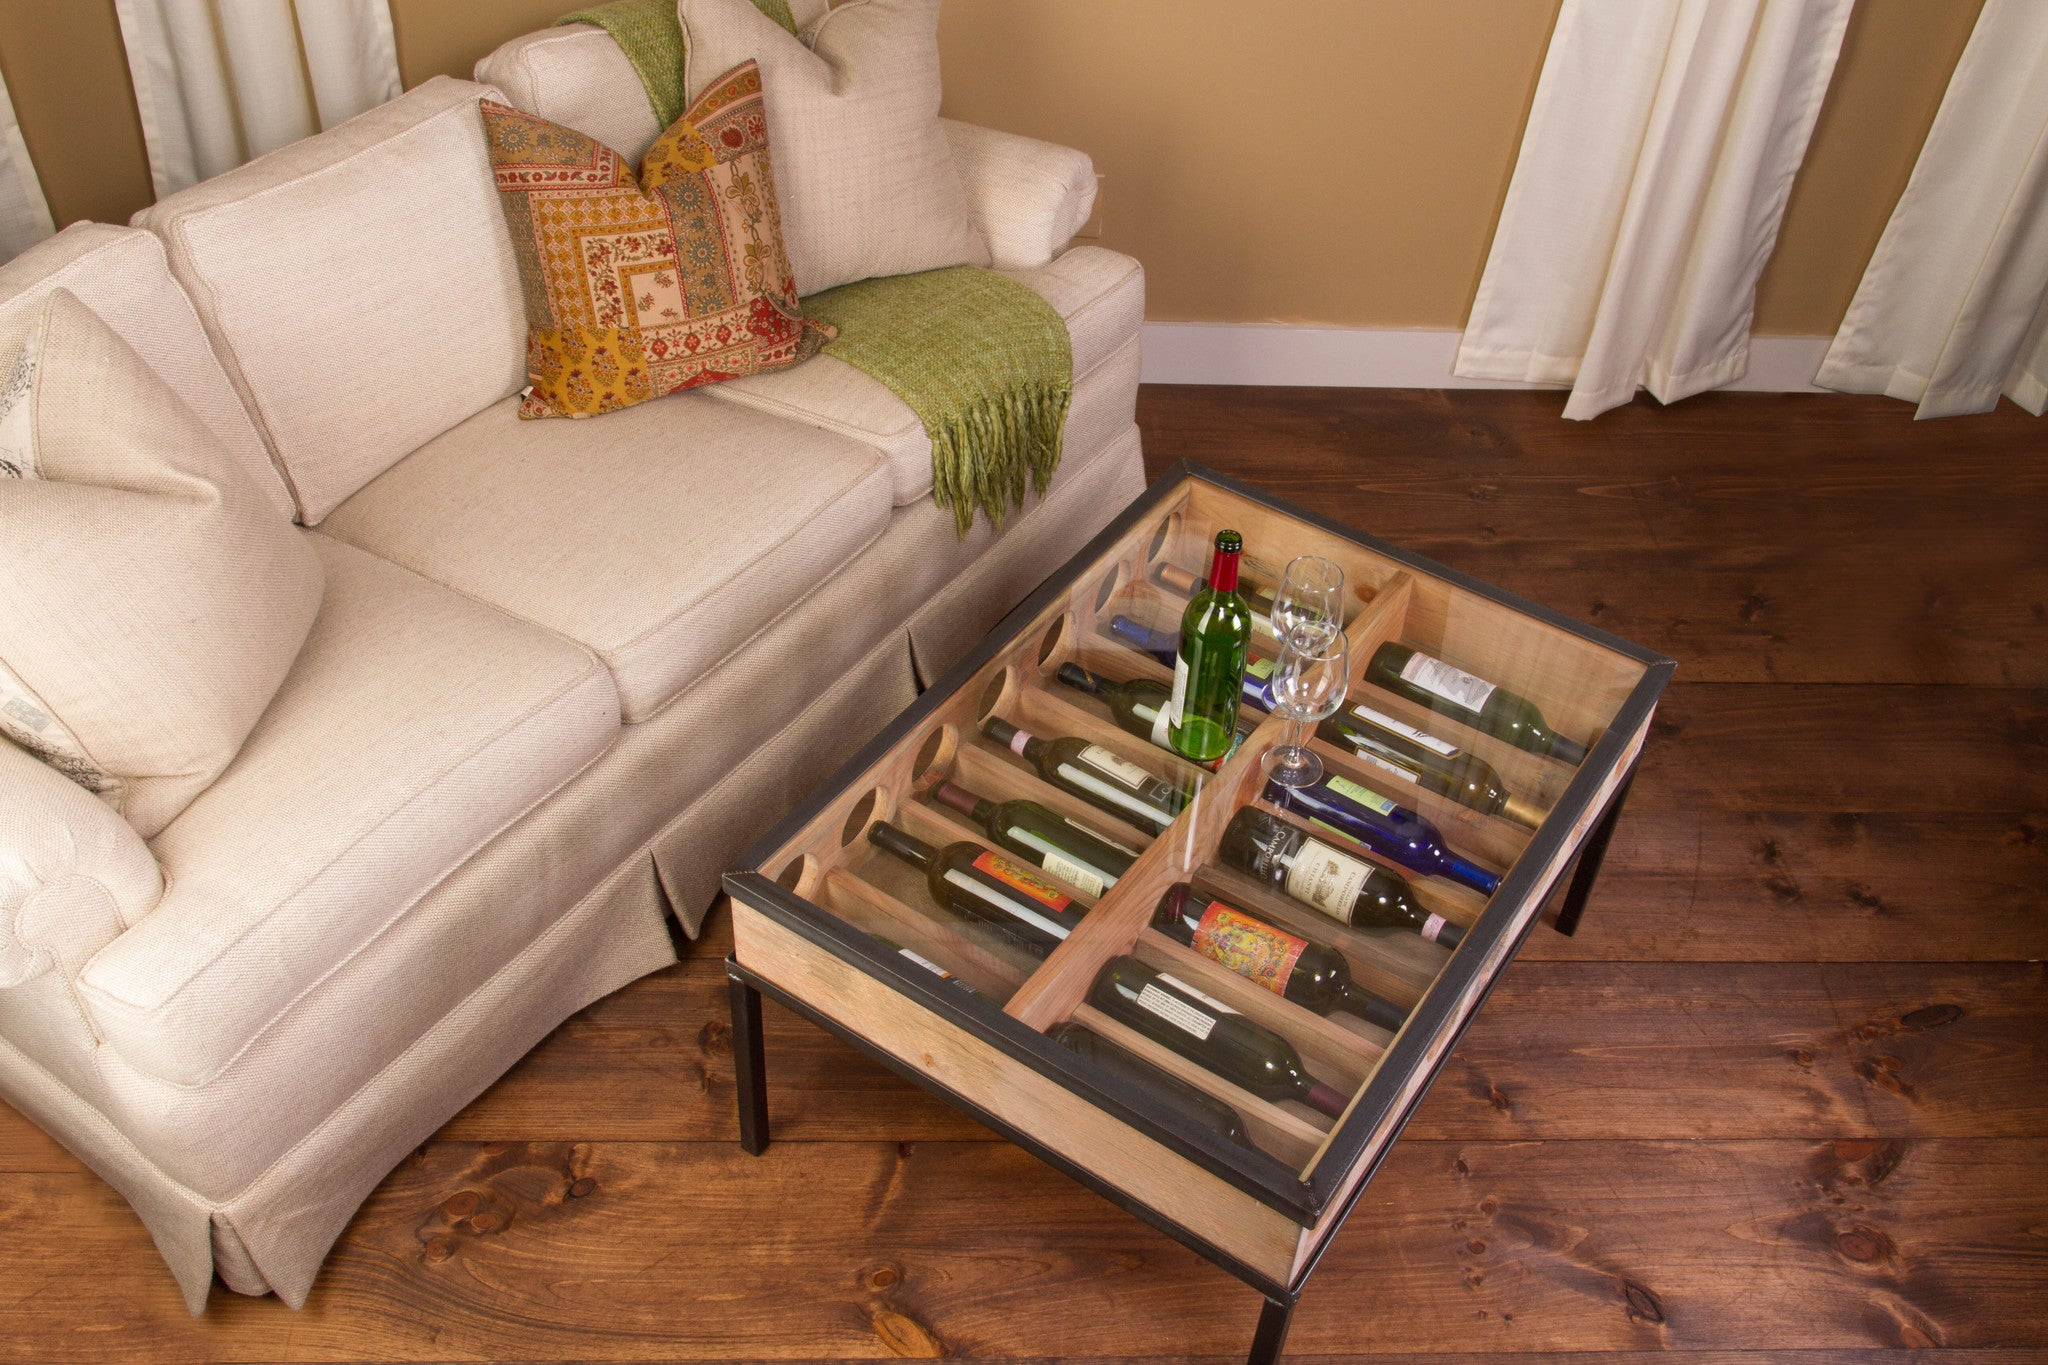 French Glass Top Coffee Table - Donachelli's Cellars